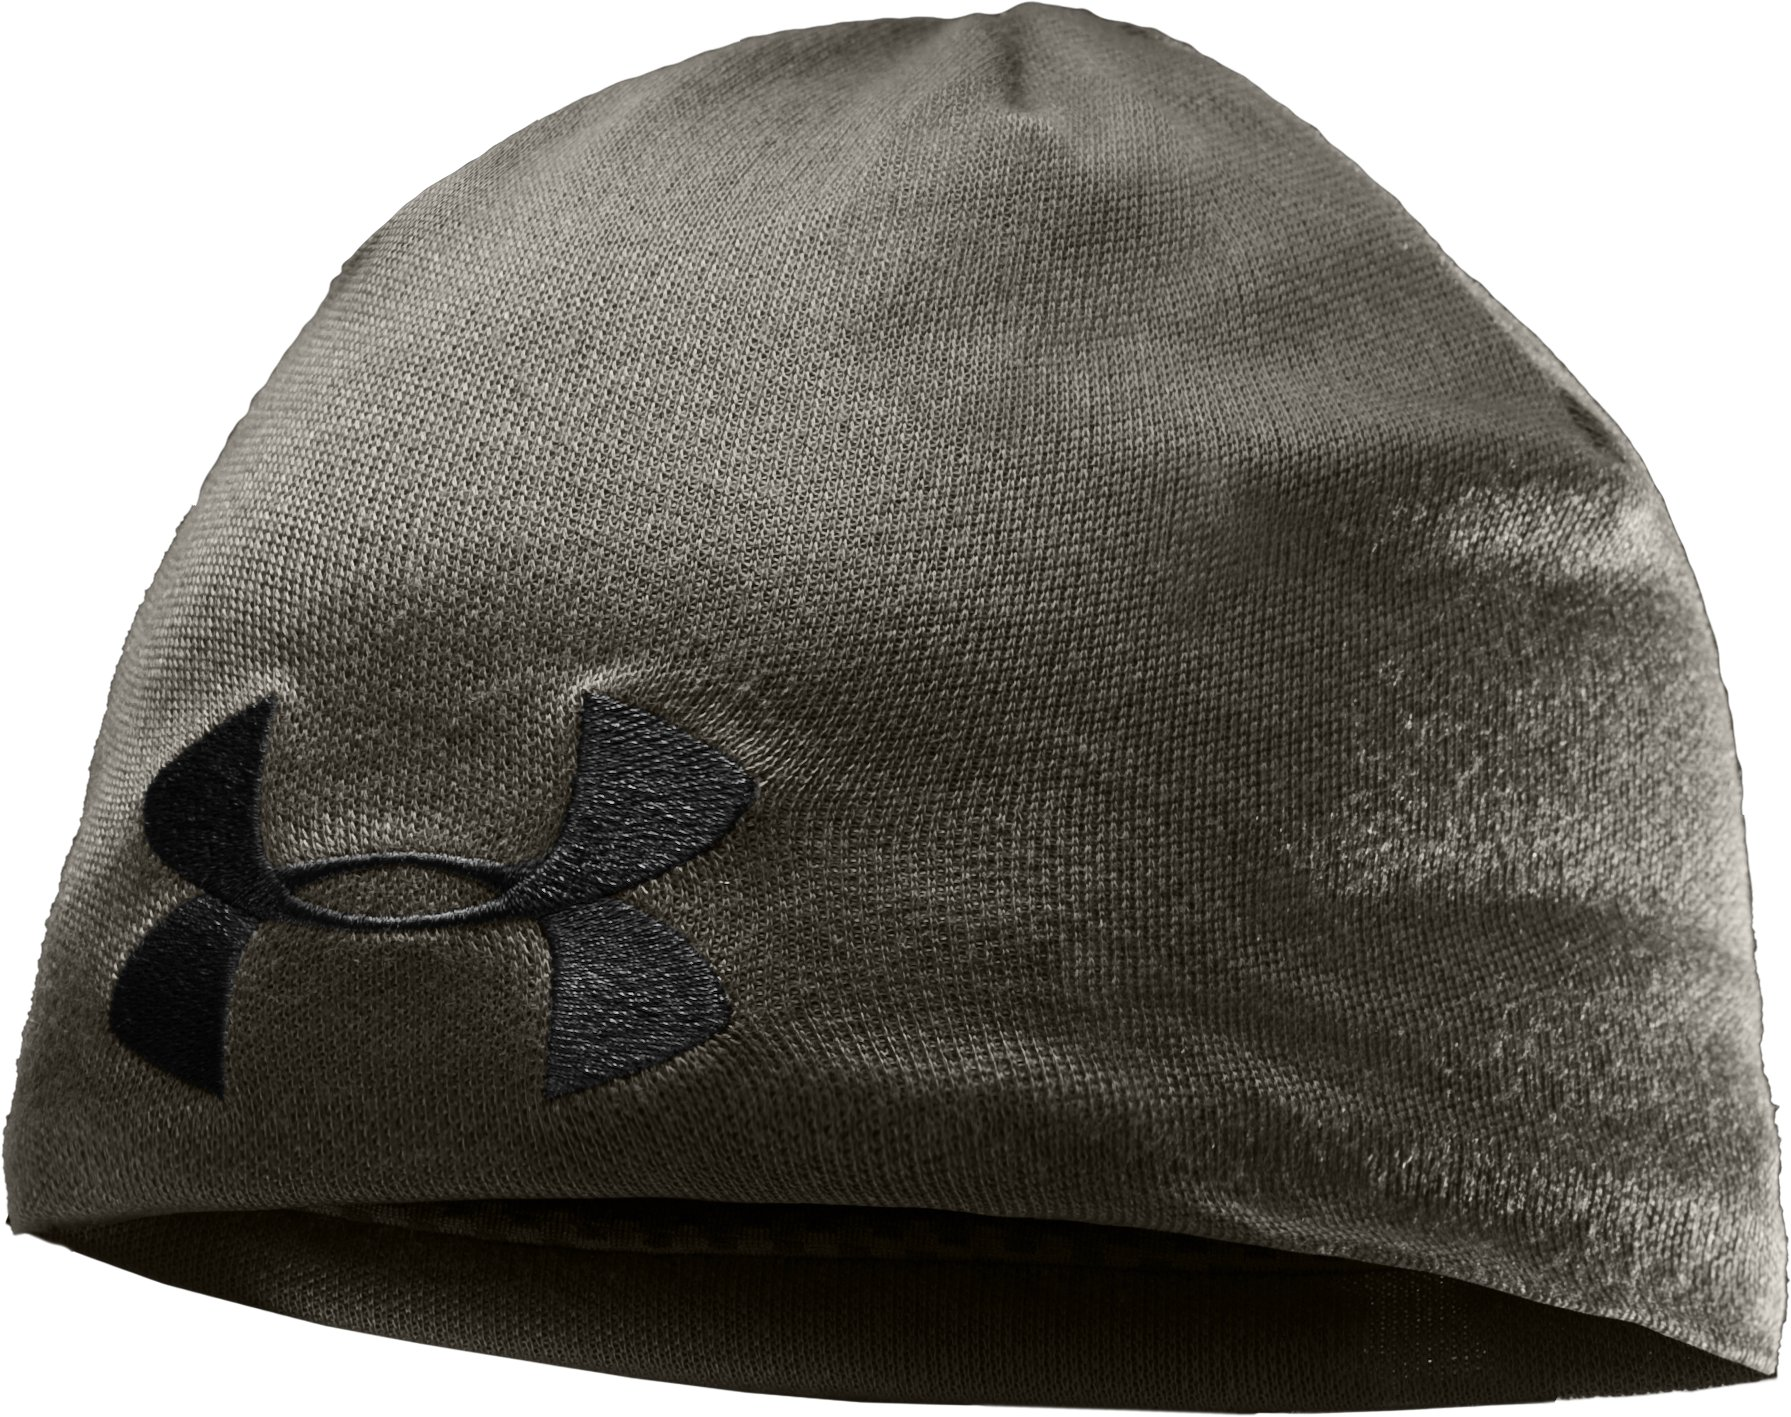 Men's Solid Active Beanie, Rifle Green